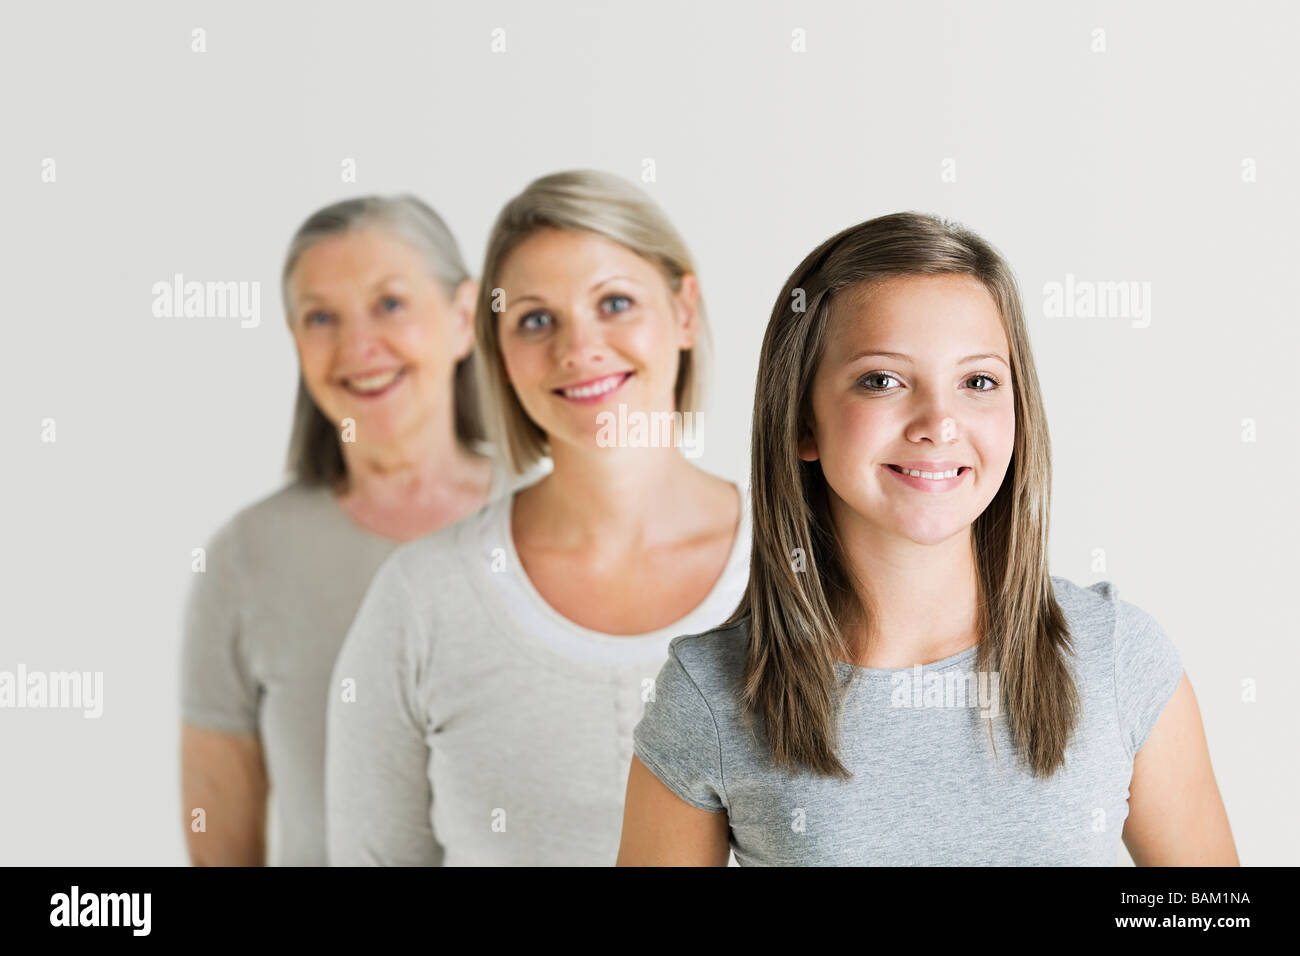 Female family members - Stock Image